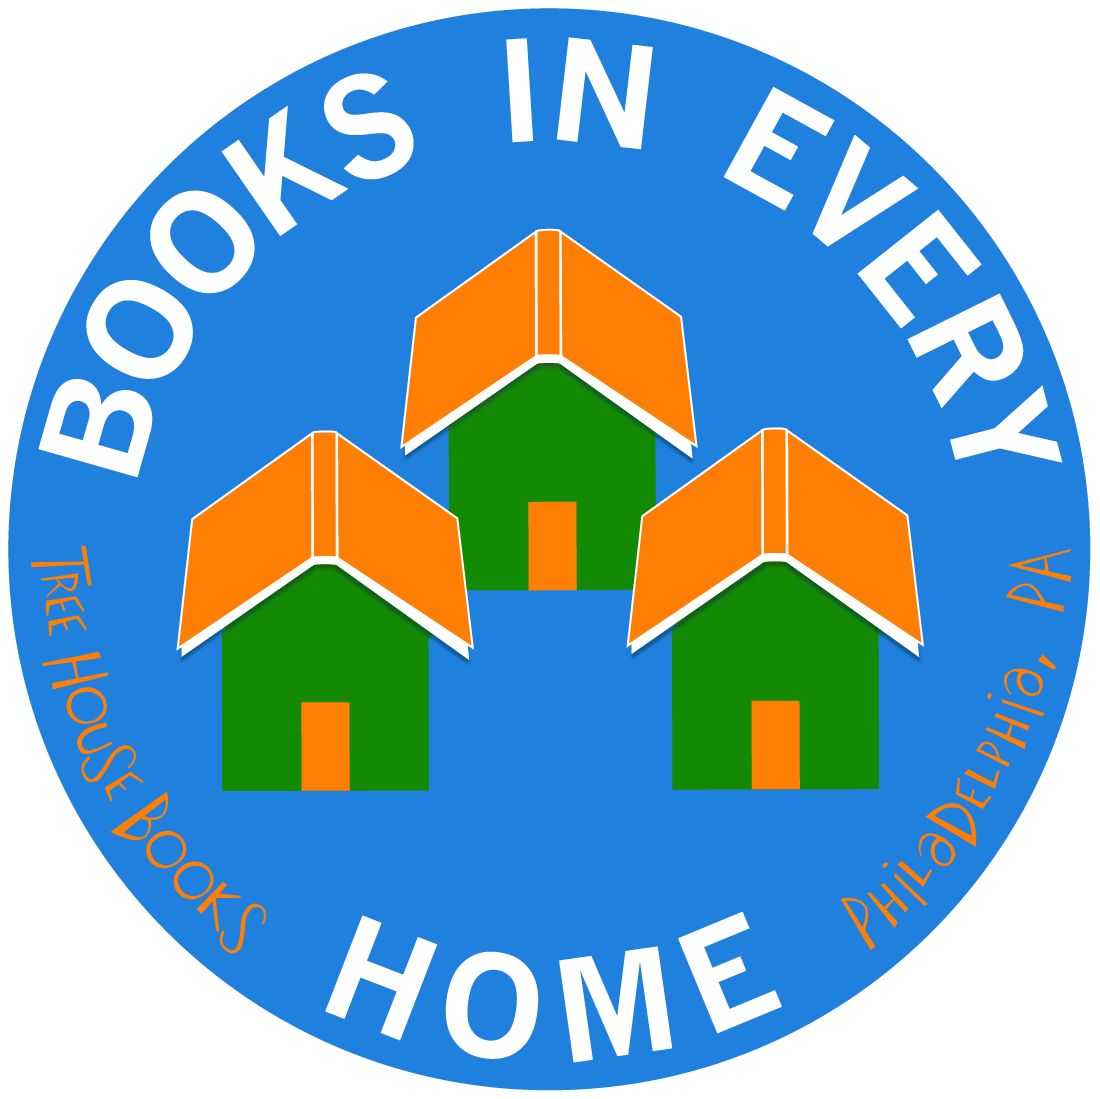 We surpassed 75,000 books in 2018! -